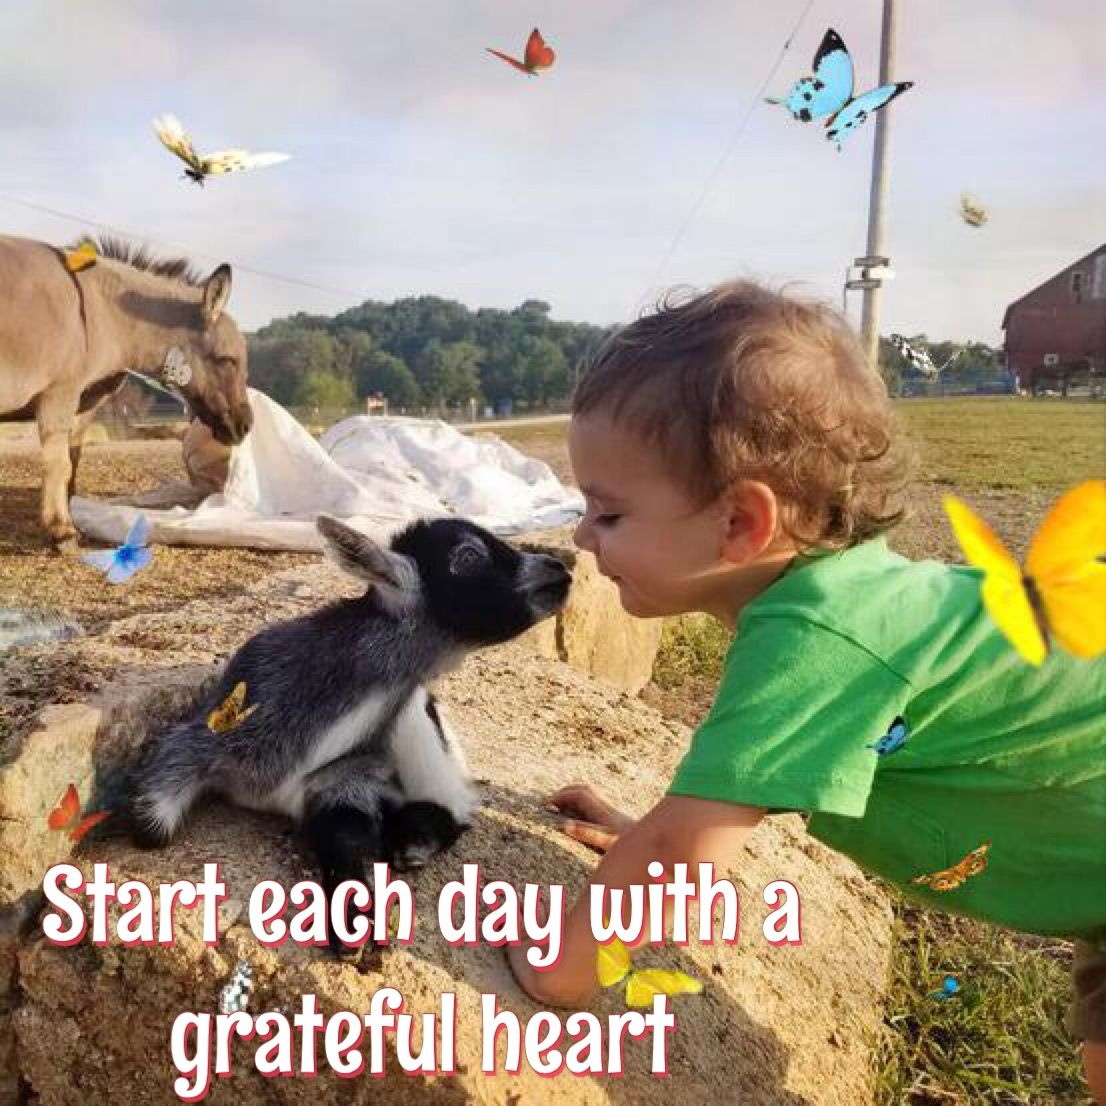 Start Each Day With A Grateful Heart Work With Animals Pig